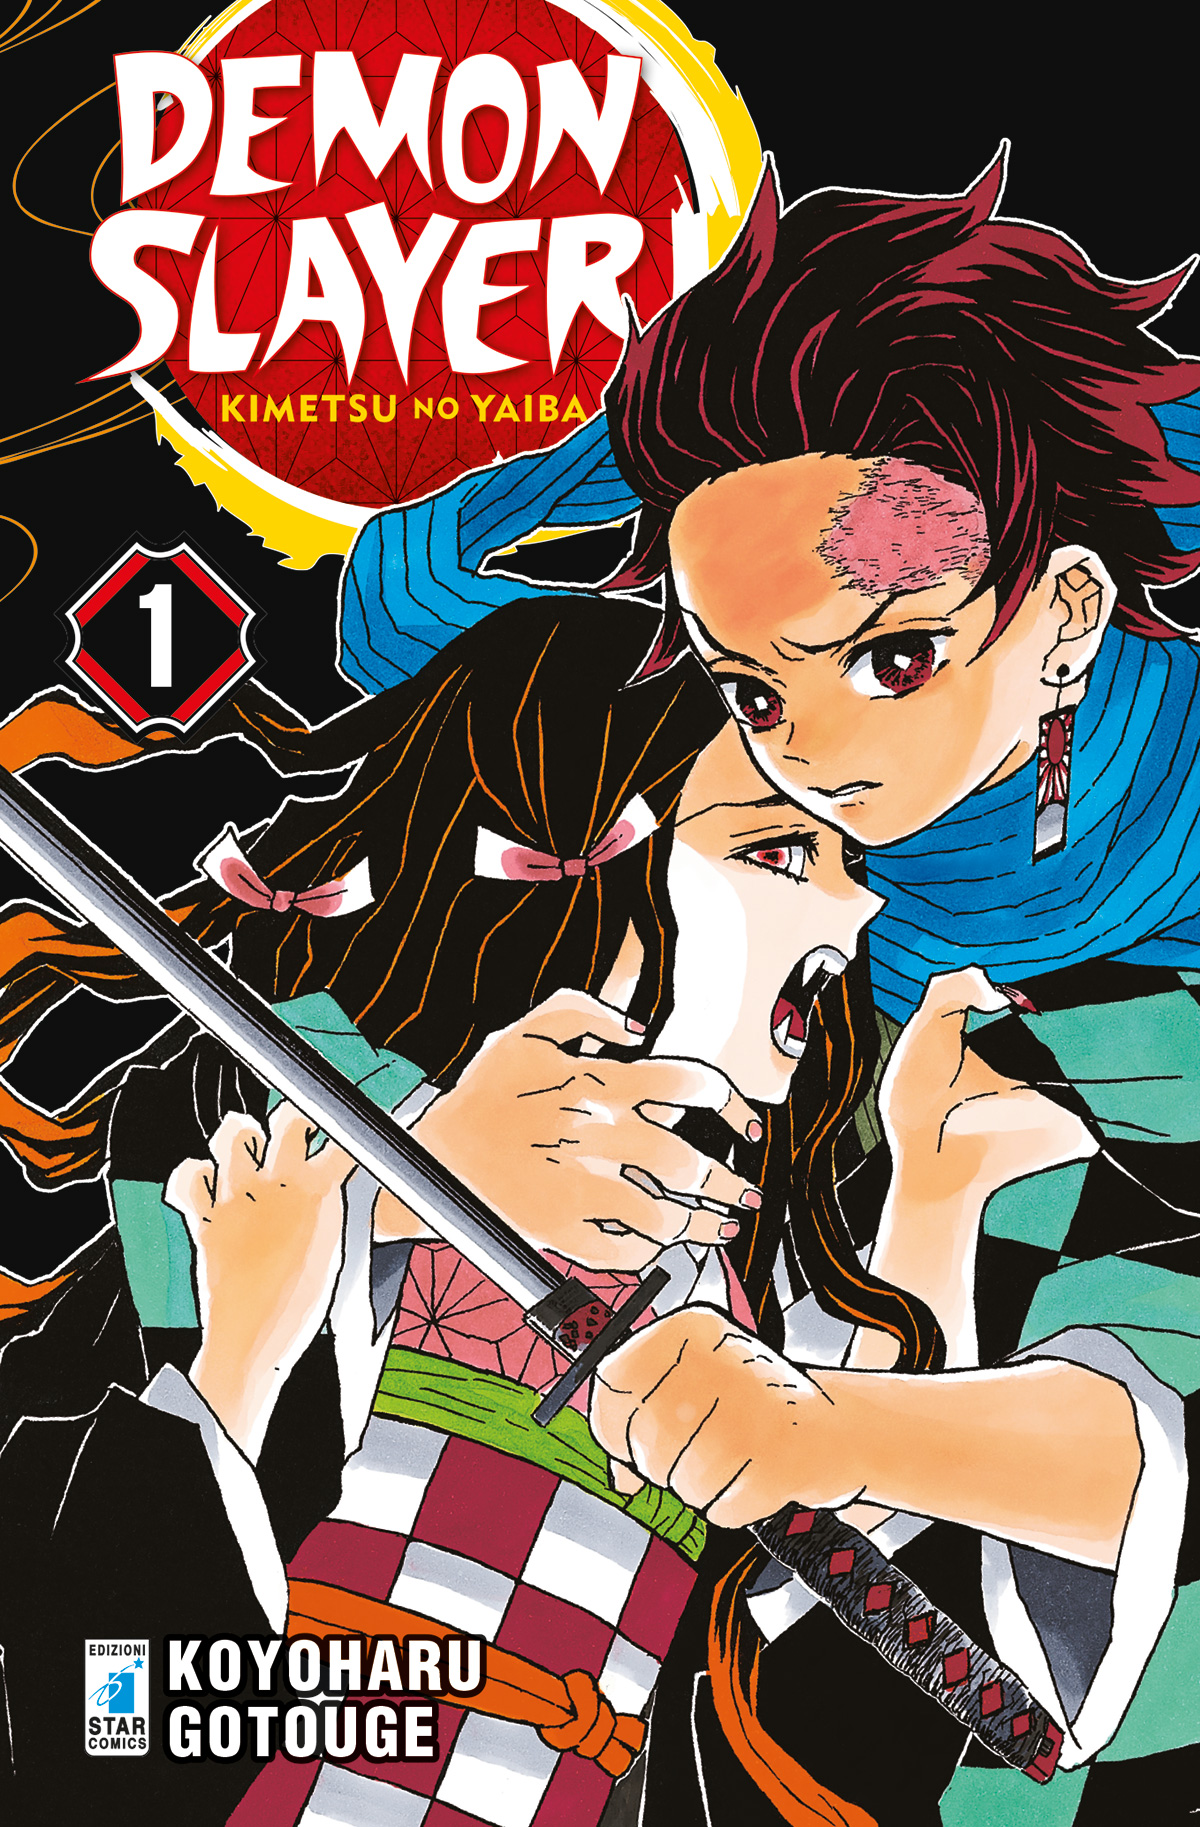 Demon Slayer - Kimetsu no yaiba.jpg